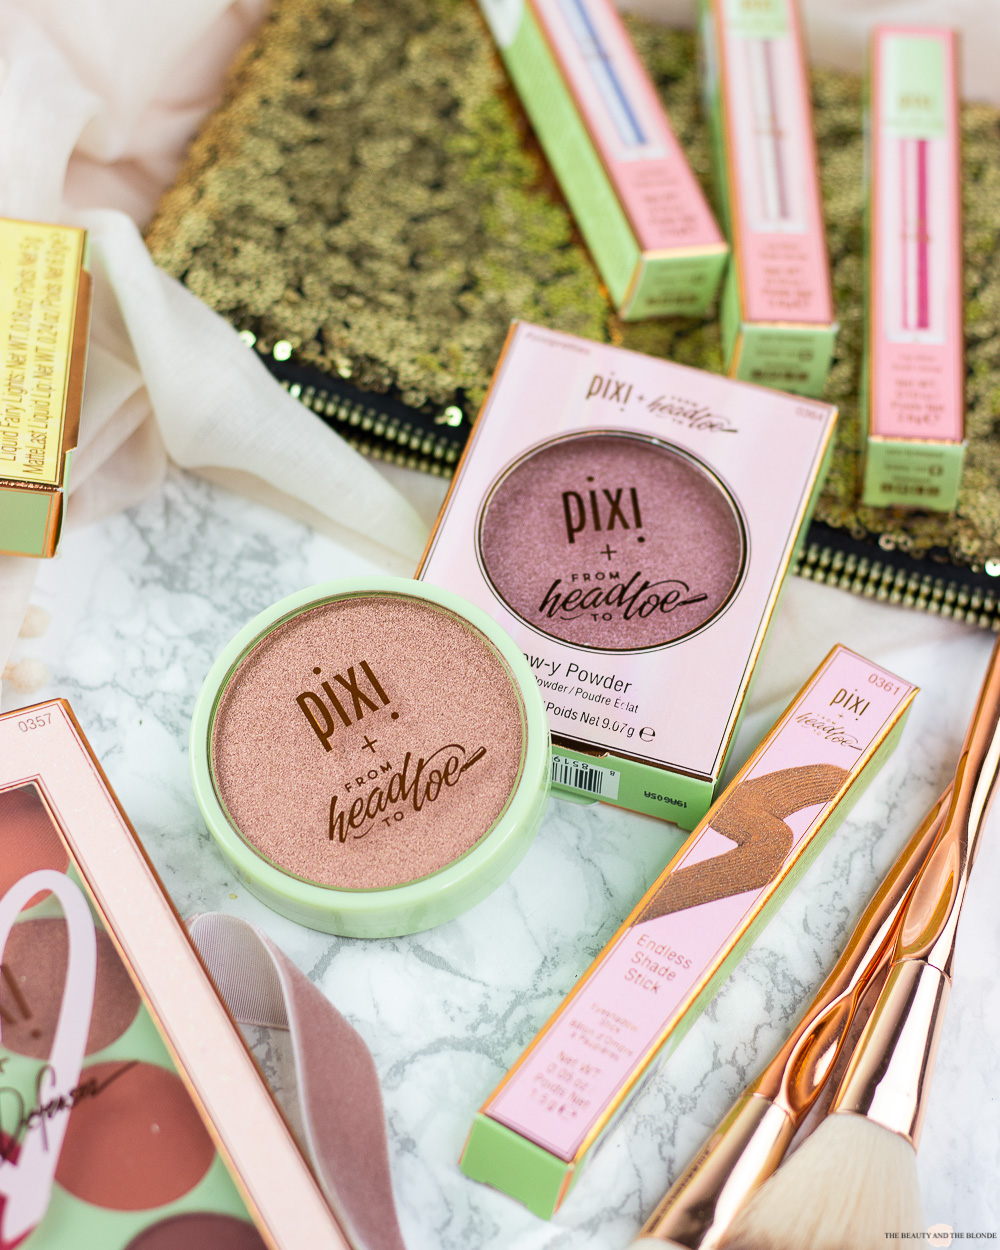 Pixi Pretties Collection 2019 From Head To Toe